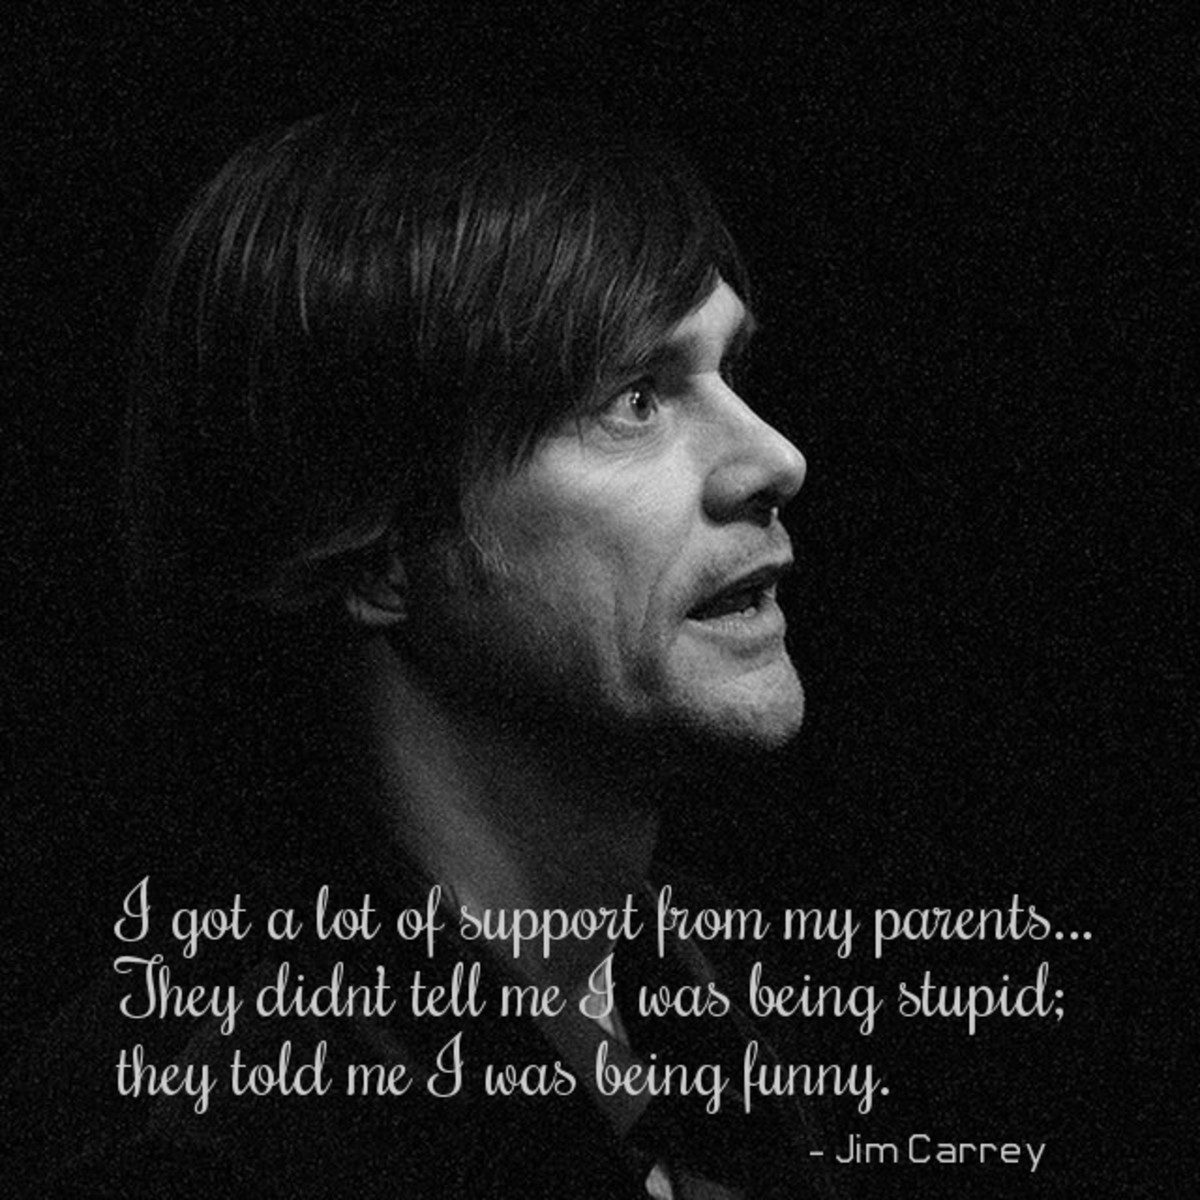 Jim Carrey is a Canadian-American actor and comedian.